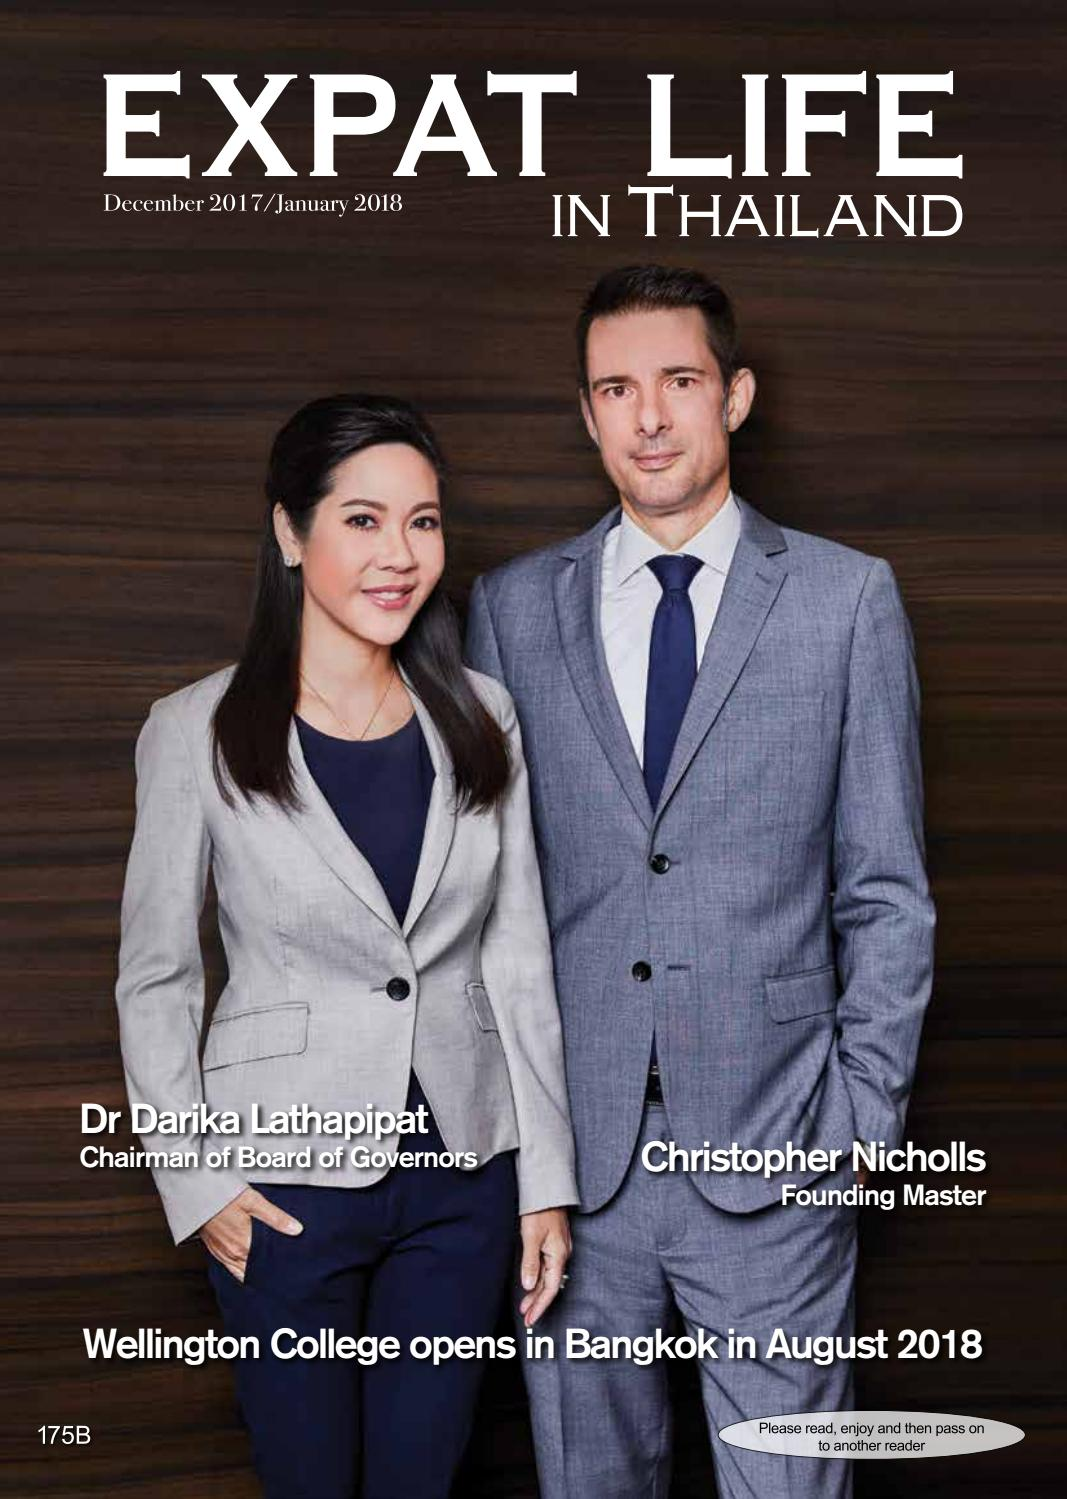 Expat Life in Thailand December/January 2018 by Expat Life - issuu